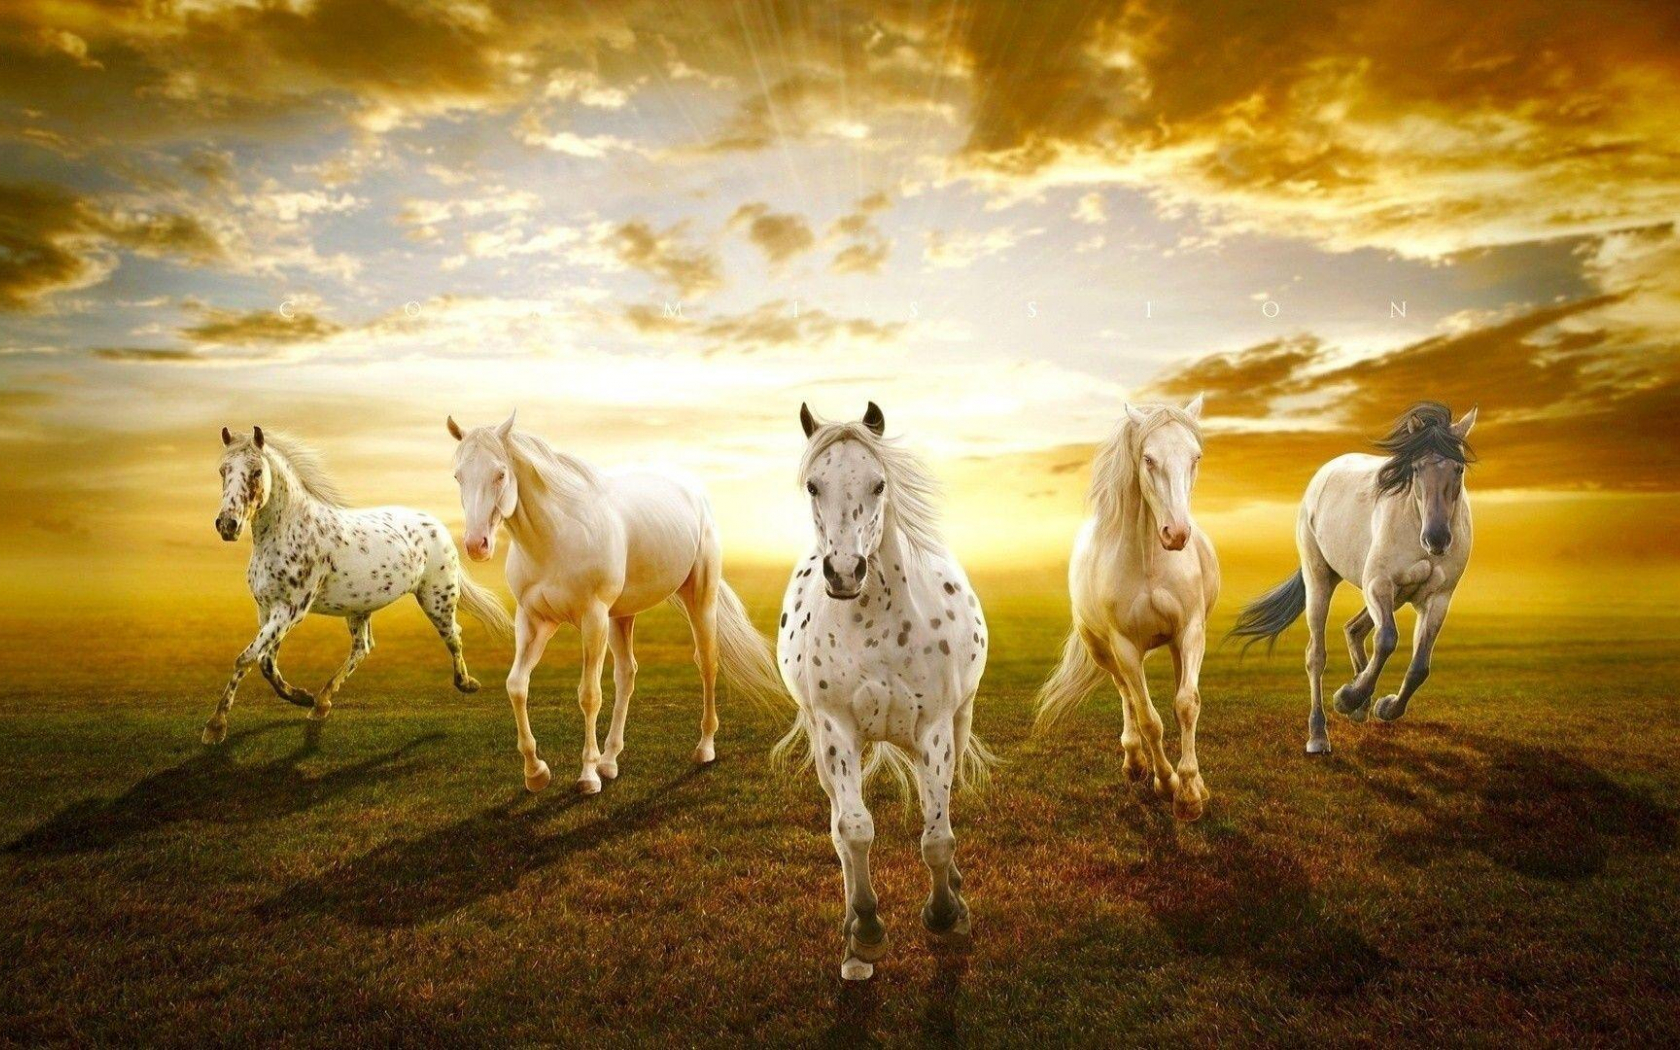 Free Download Seven Horses Wallpaper 7 For Android Apk Download